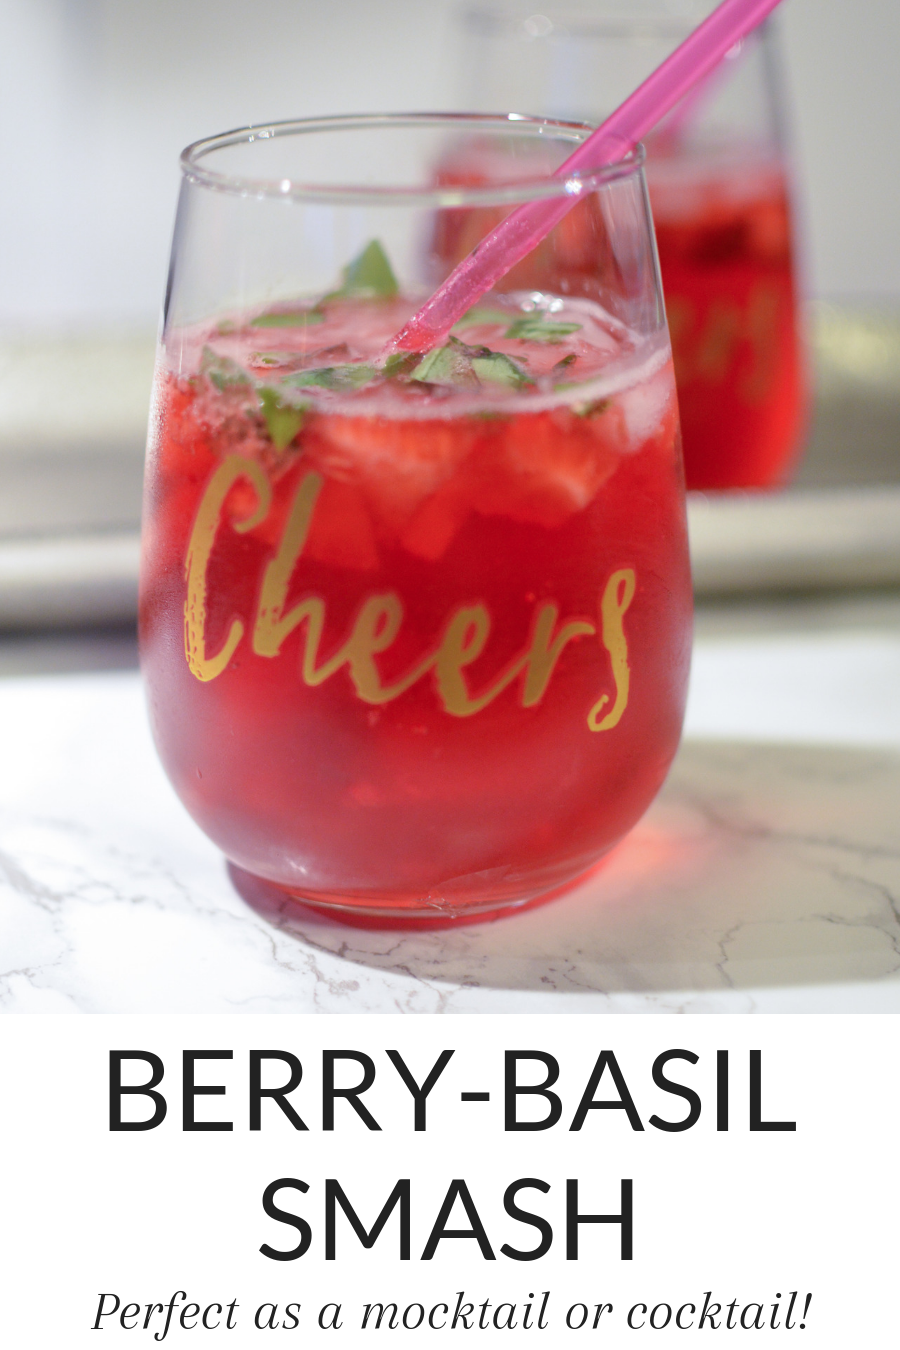 #AD This Berry-Basil Smash is the perfect low calorie treat! Personalize your flavor combinations, have it as a mocktail or cocktail, and enjoy! Easy and delicious! #SparklingIce #Sparklingwater #mocktail #cocktail